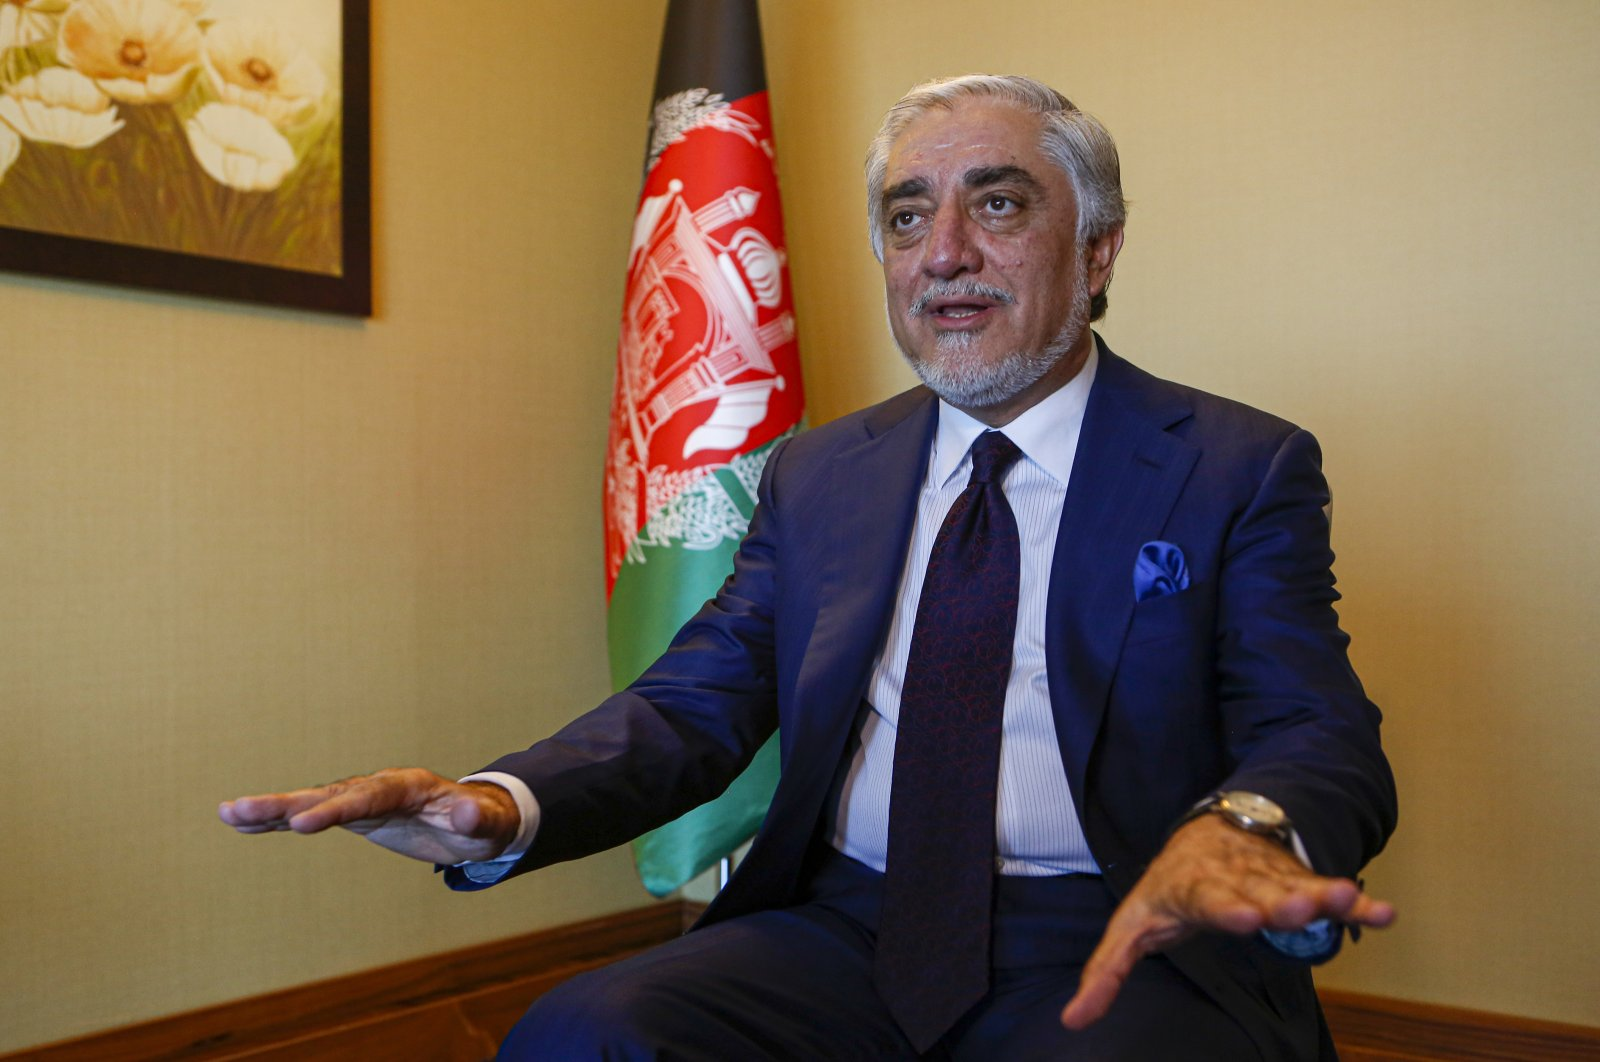 Abdullah Abdullah, head of Afghanistan's National Reconciliation Council, gestures as he talks during an interview on the sidelines of a diplomatic forum in Antalya, Turkey, June 18, 2021. (AP Photo)